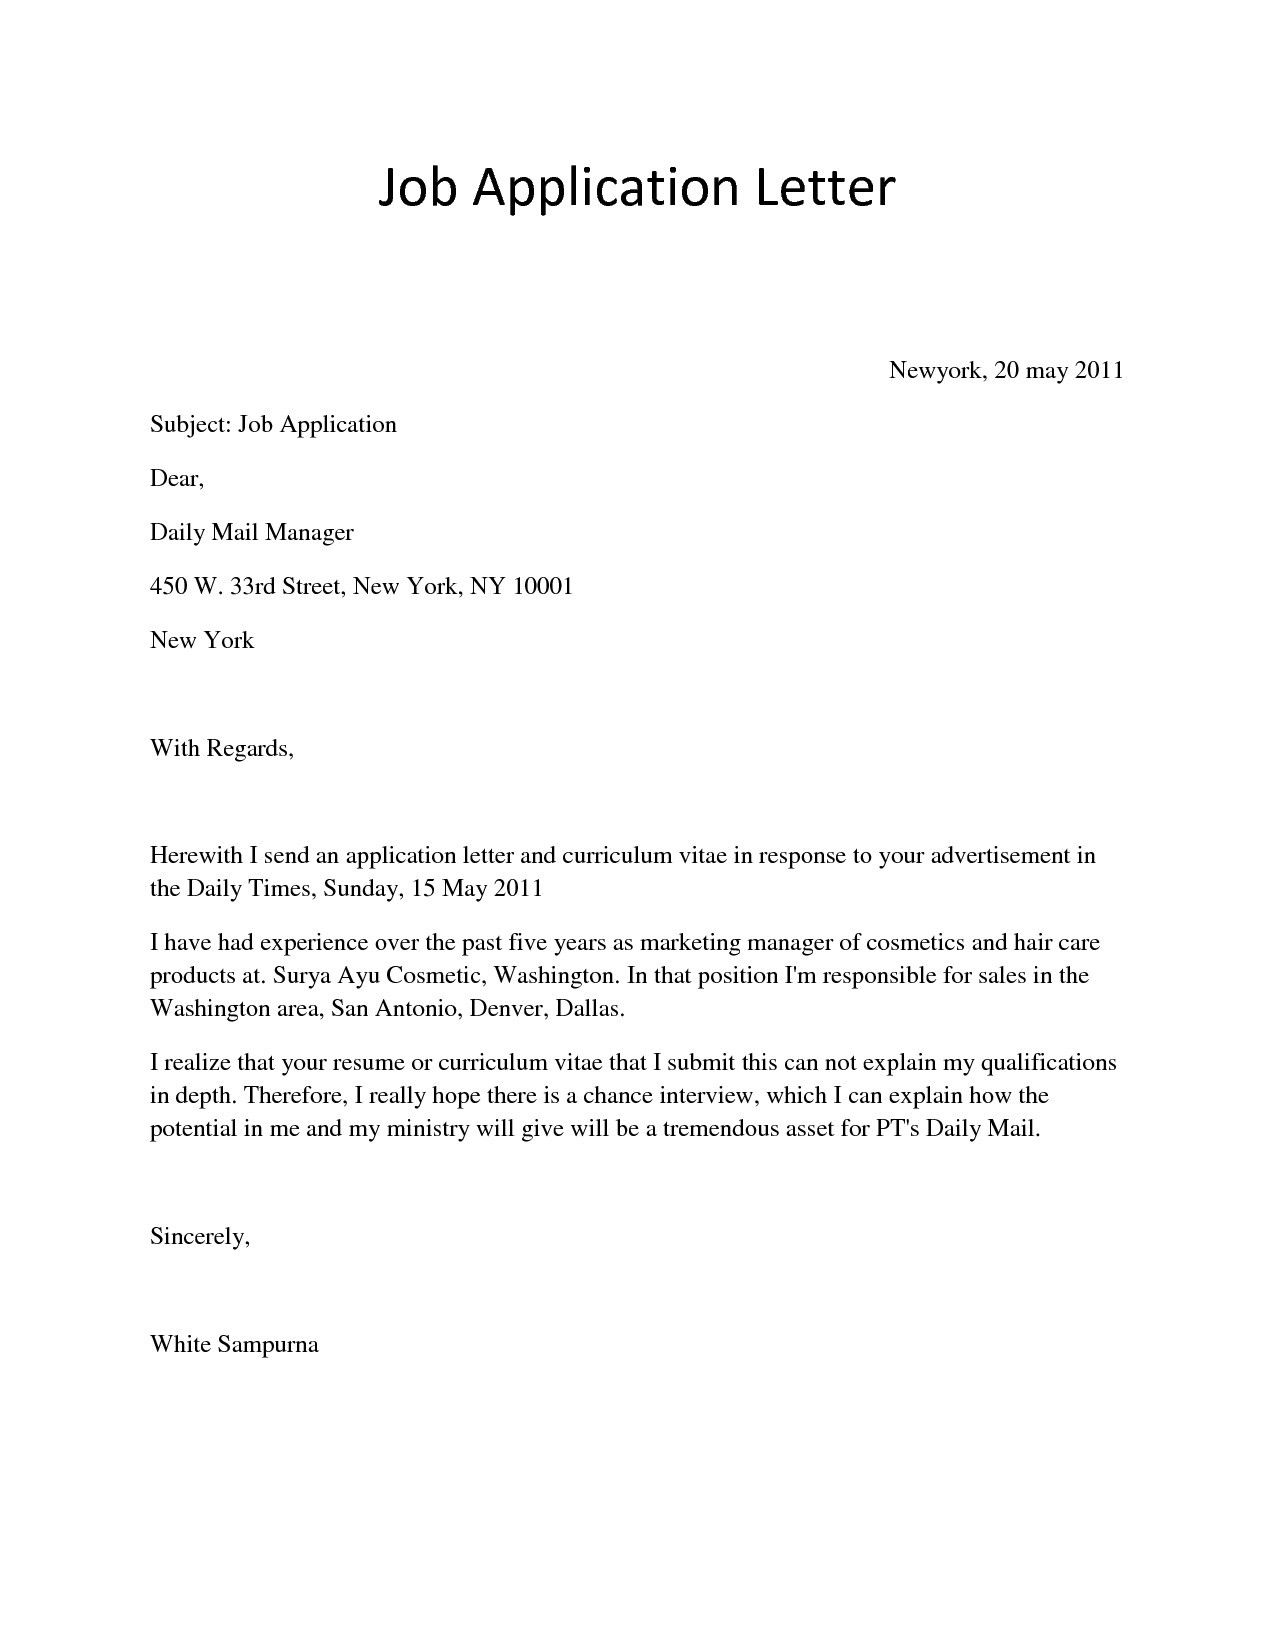 Cover Letter Template Ngo Job Application Letter Sample